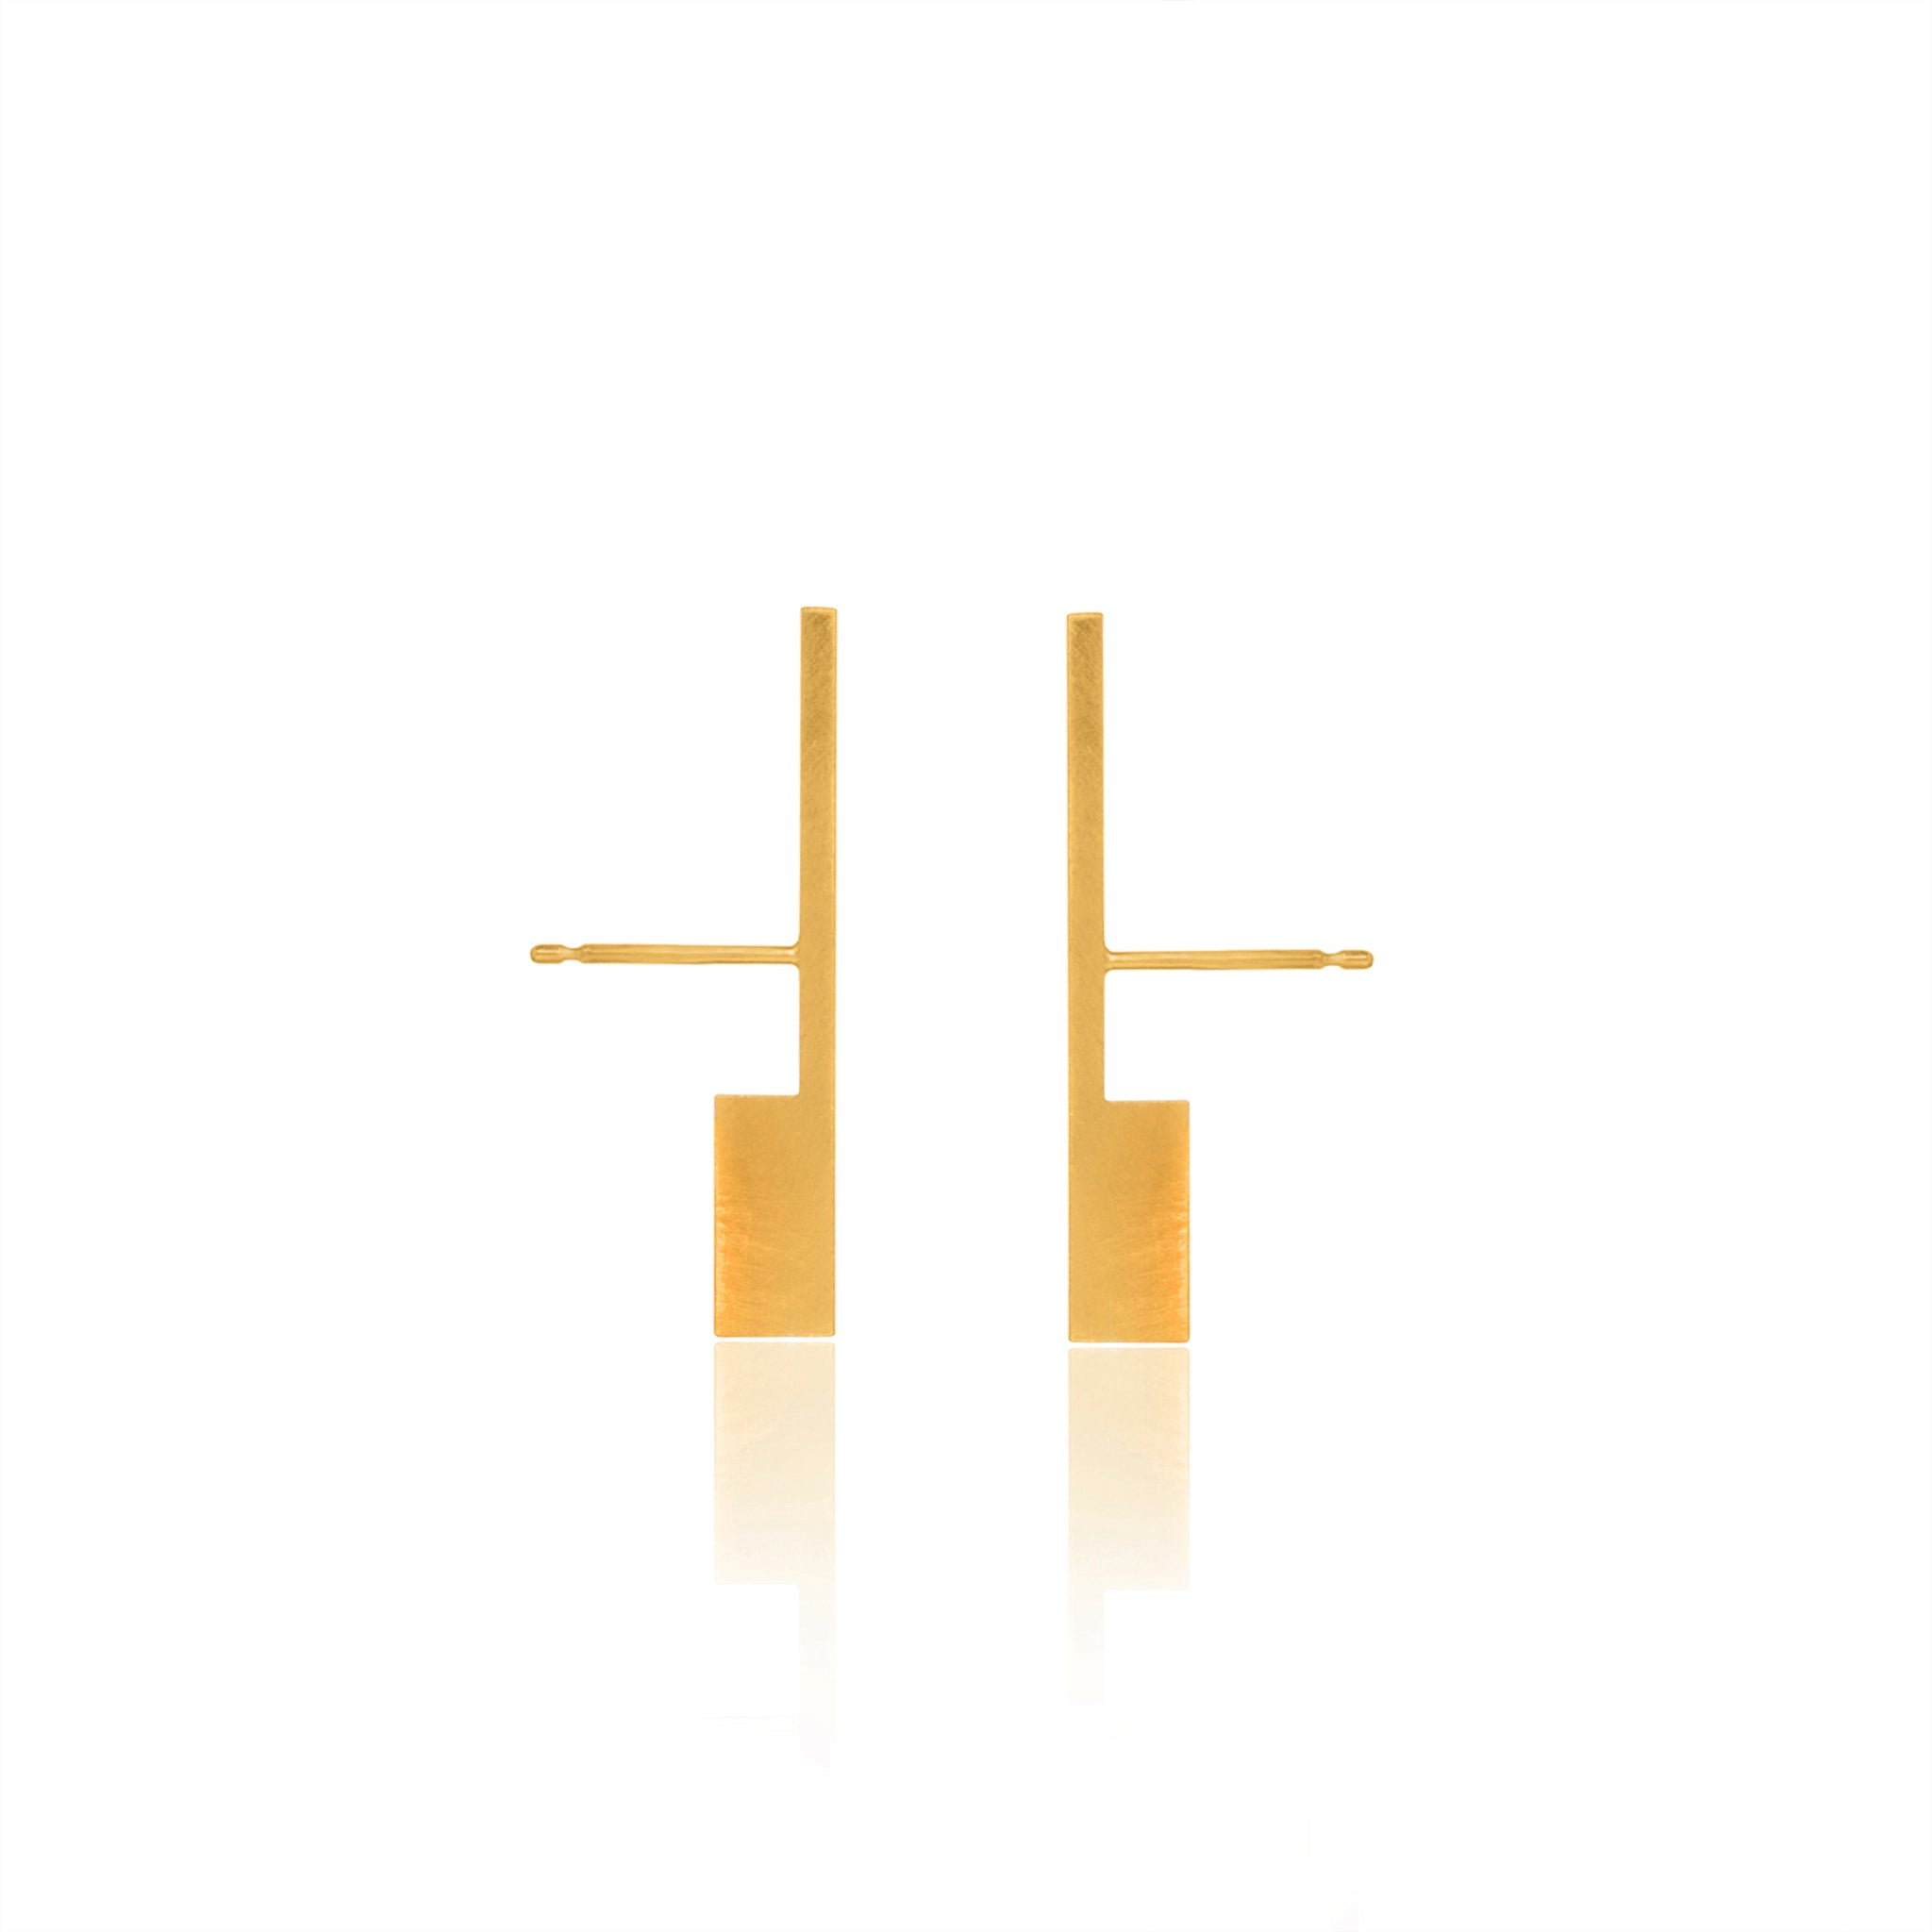 Unfinishing Line Gold Perspective Earrings